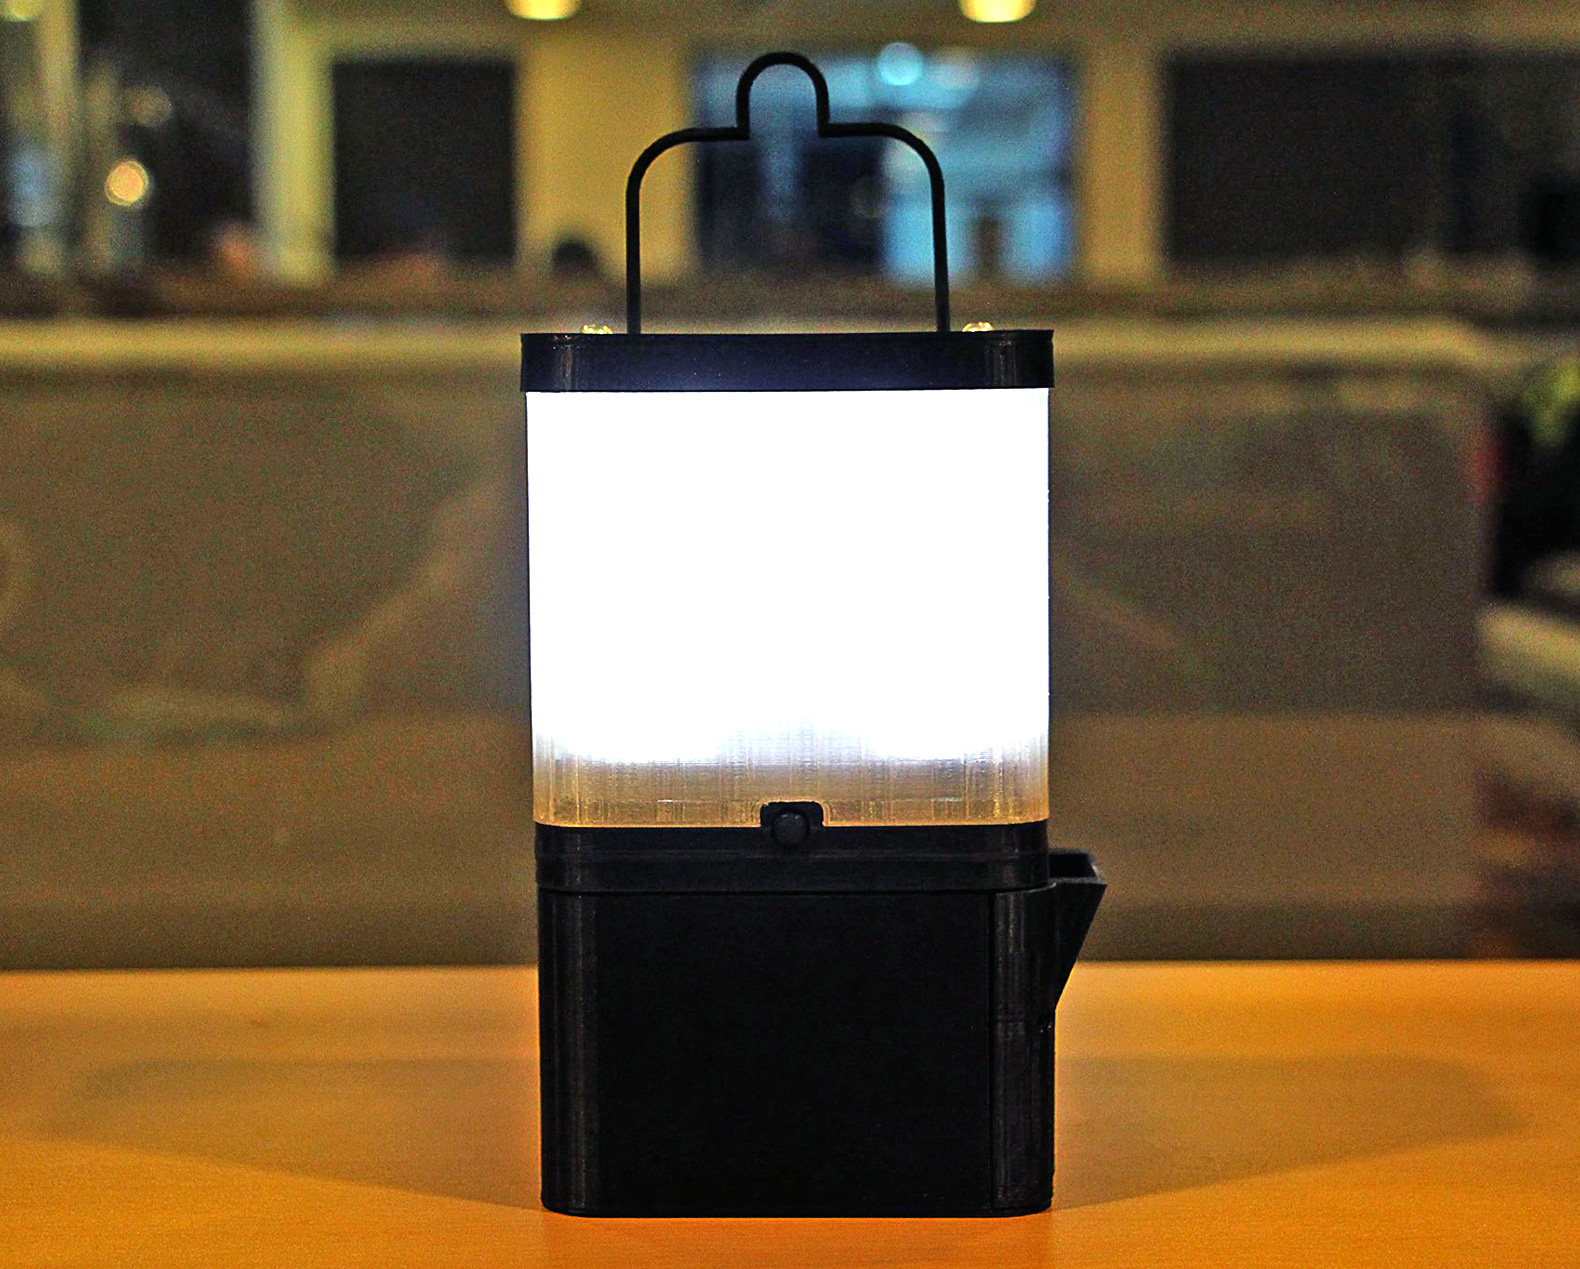 SaltPowered Lamp 8 Hours of Light from 1 Glass of Saltwater  Urbanist